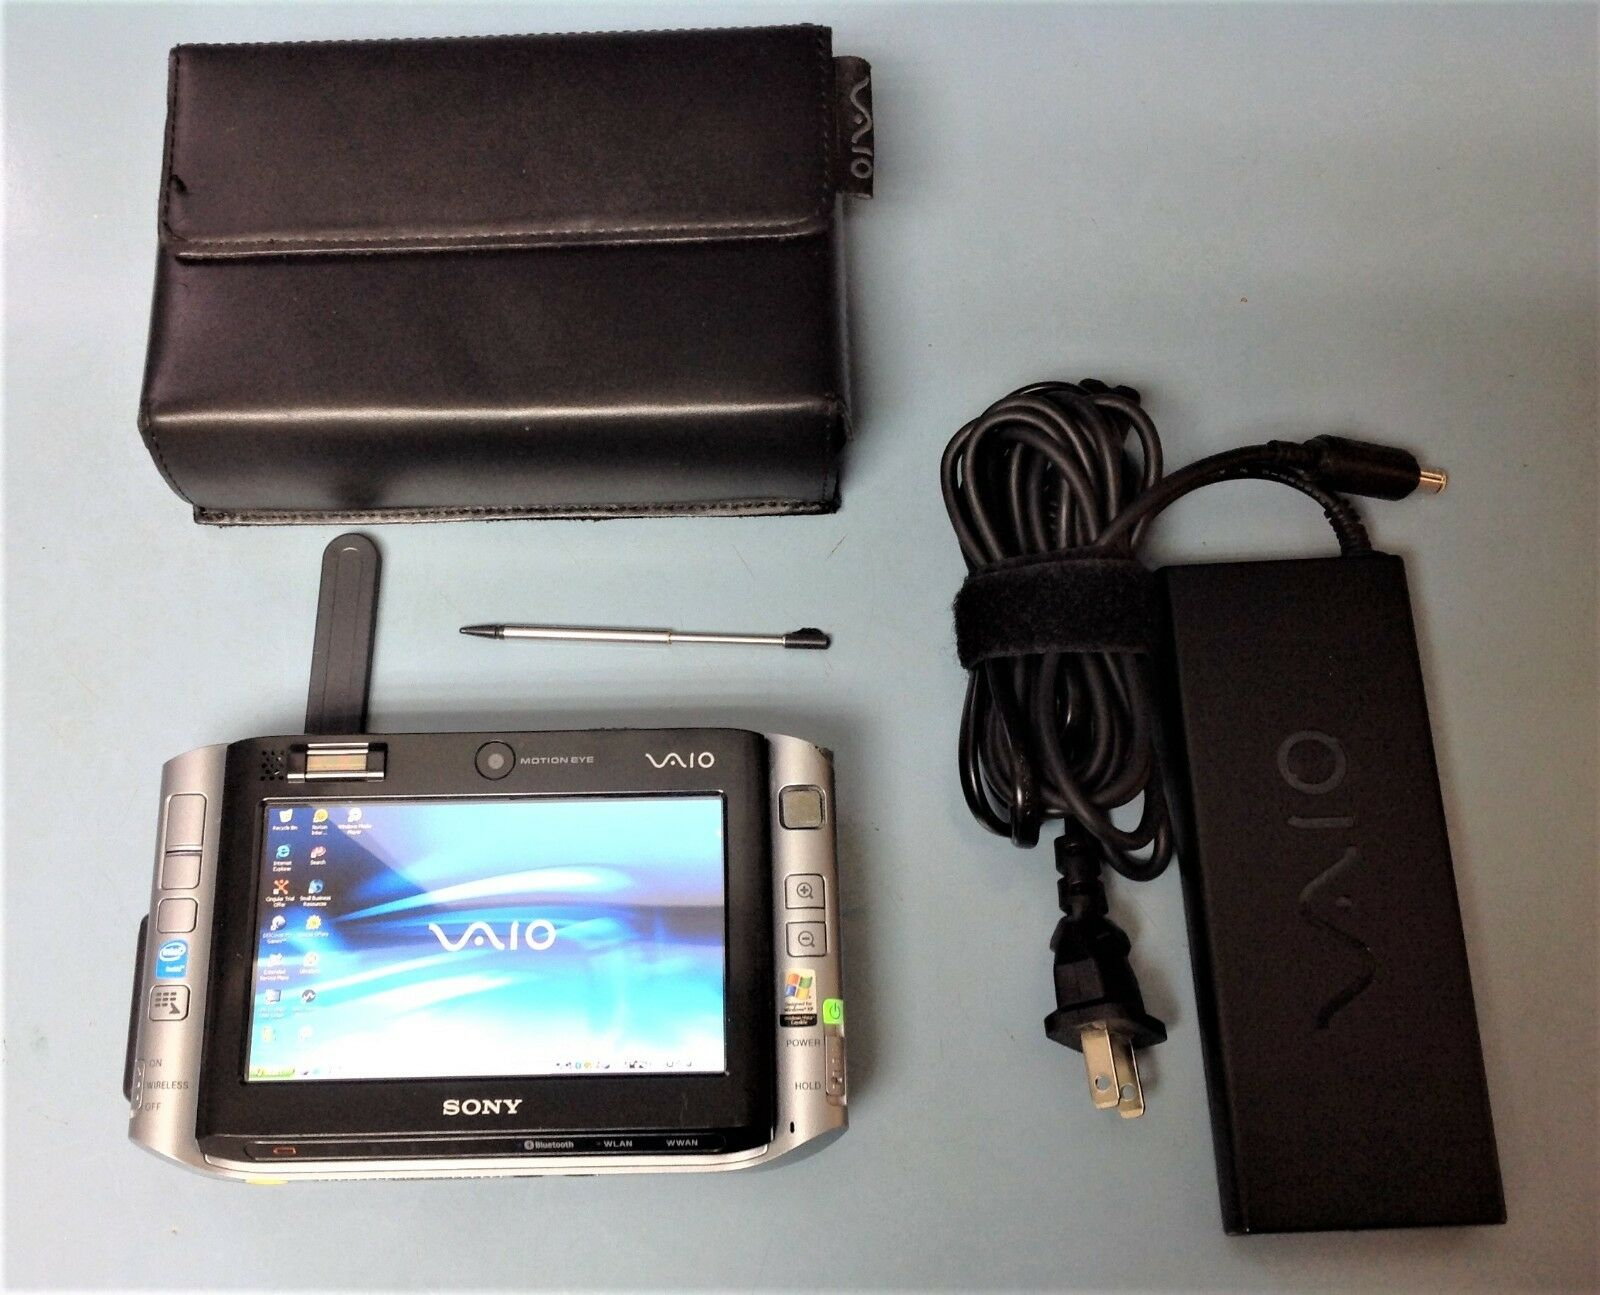 Sony VAIO UX Micro PC VGN-UX280P 4.5in. 30GB, Intel Core Solo, 1.2GHz, 1GB RAM